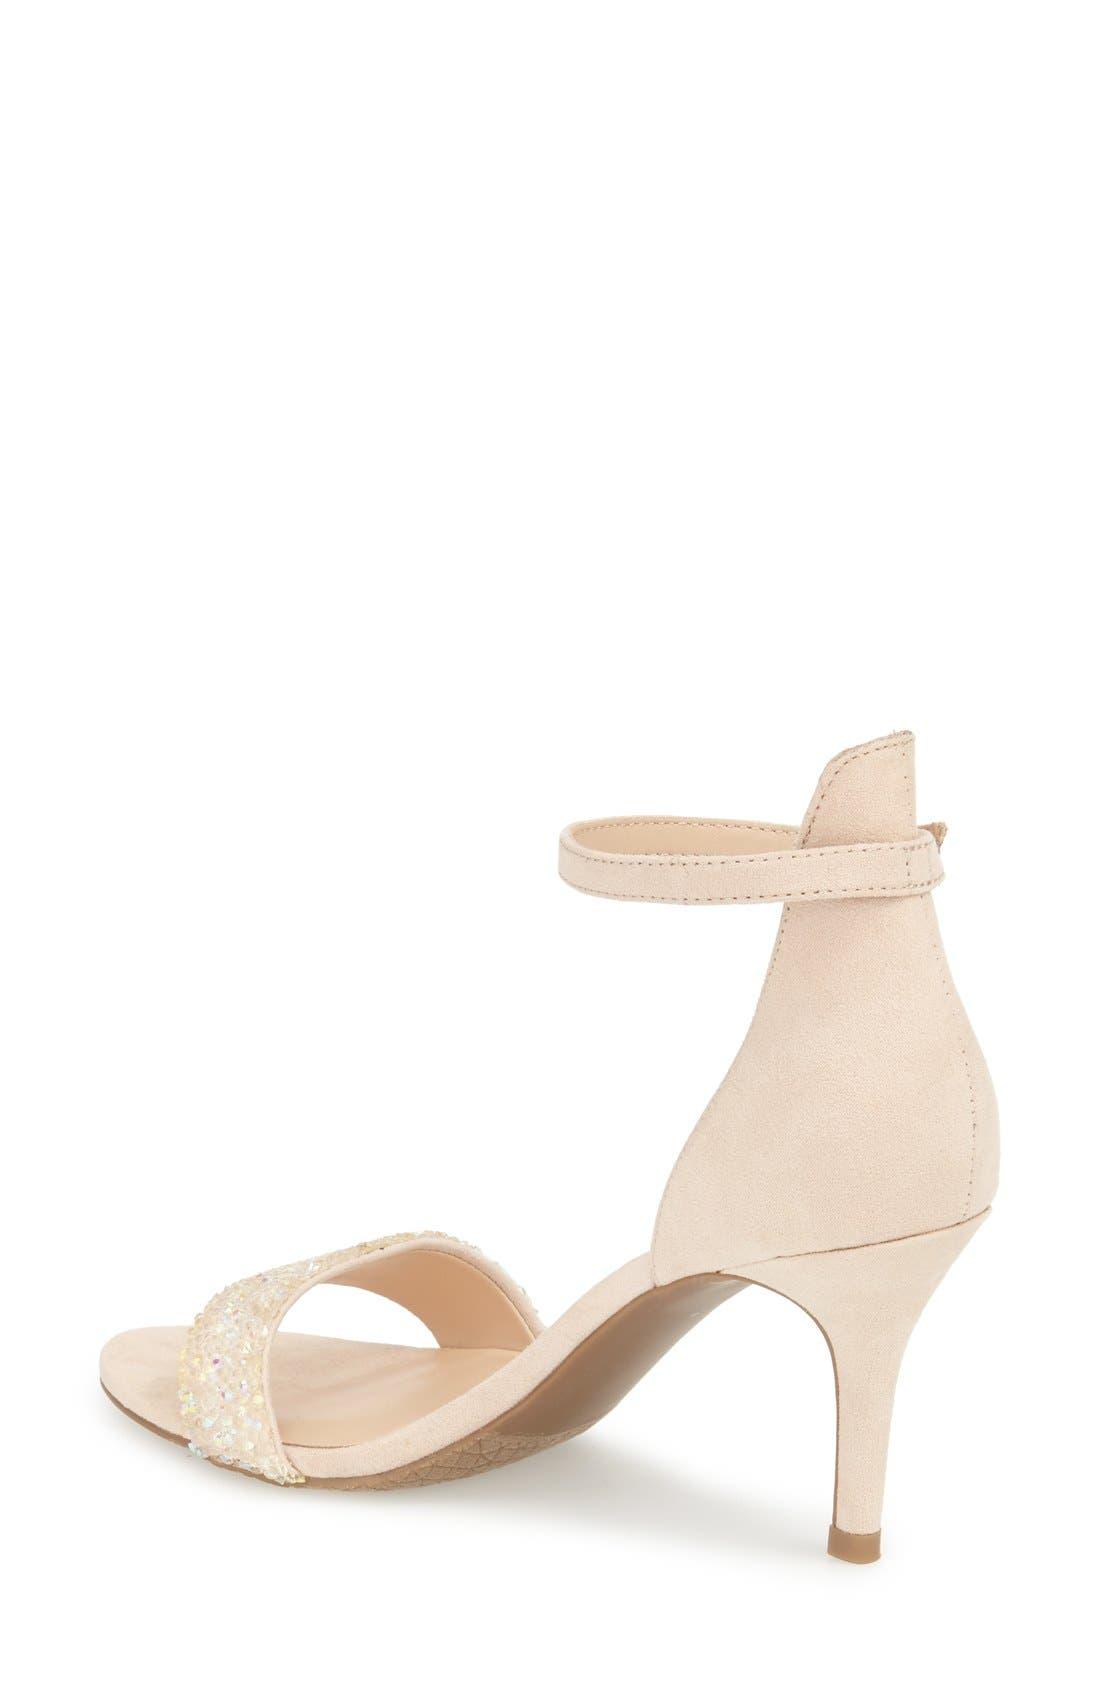 'Luminate' Open Toe Dress Sandal,                             Alternate thumbnail 77, color,